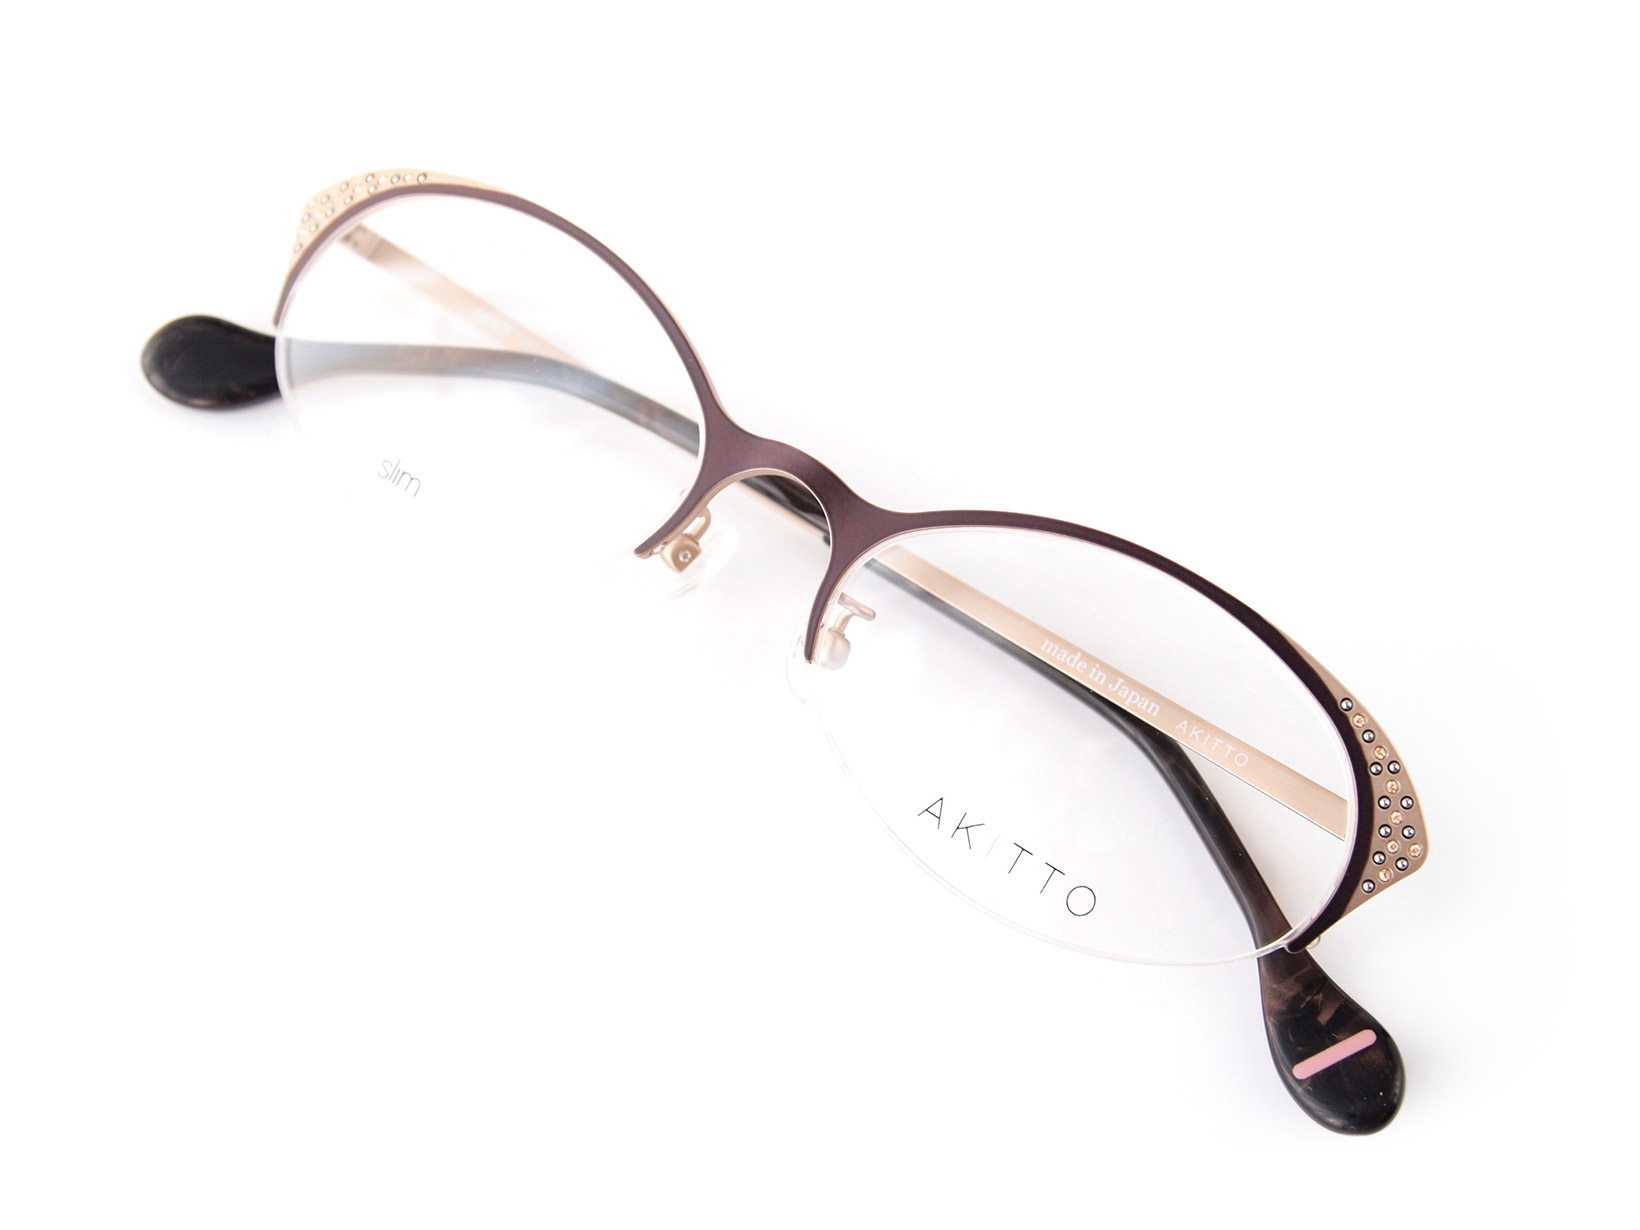 AKITTO 2015-4th soe2 color|TP size:53□18 material:titanium+swarovski price:44,500-(+tax)